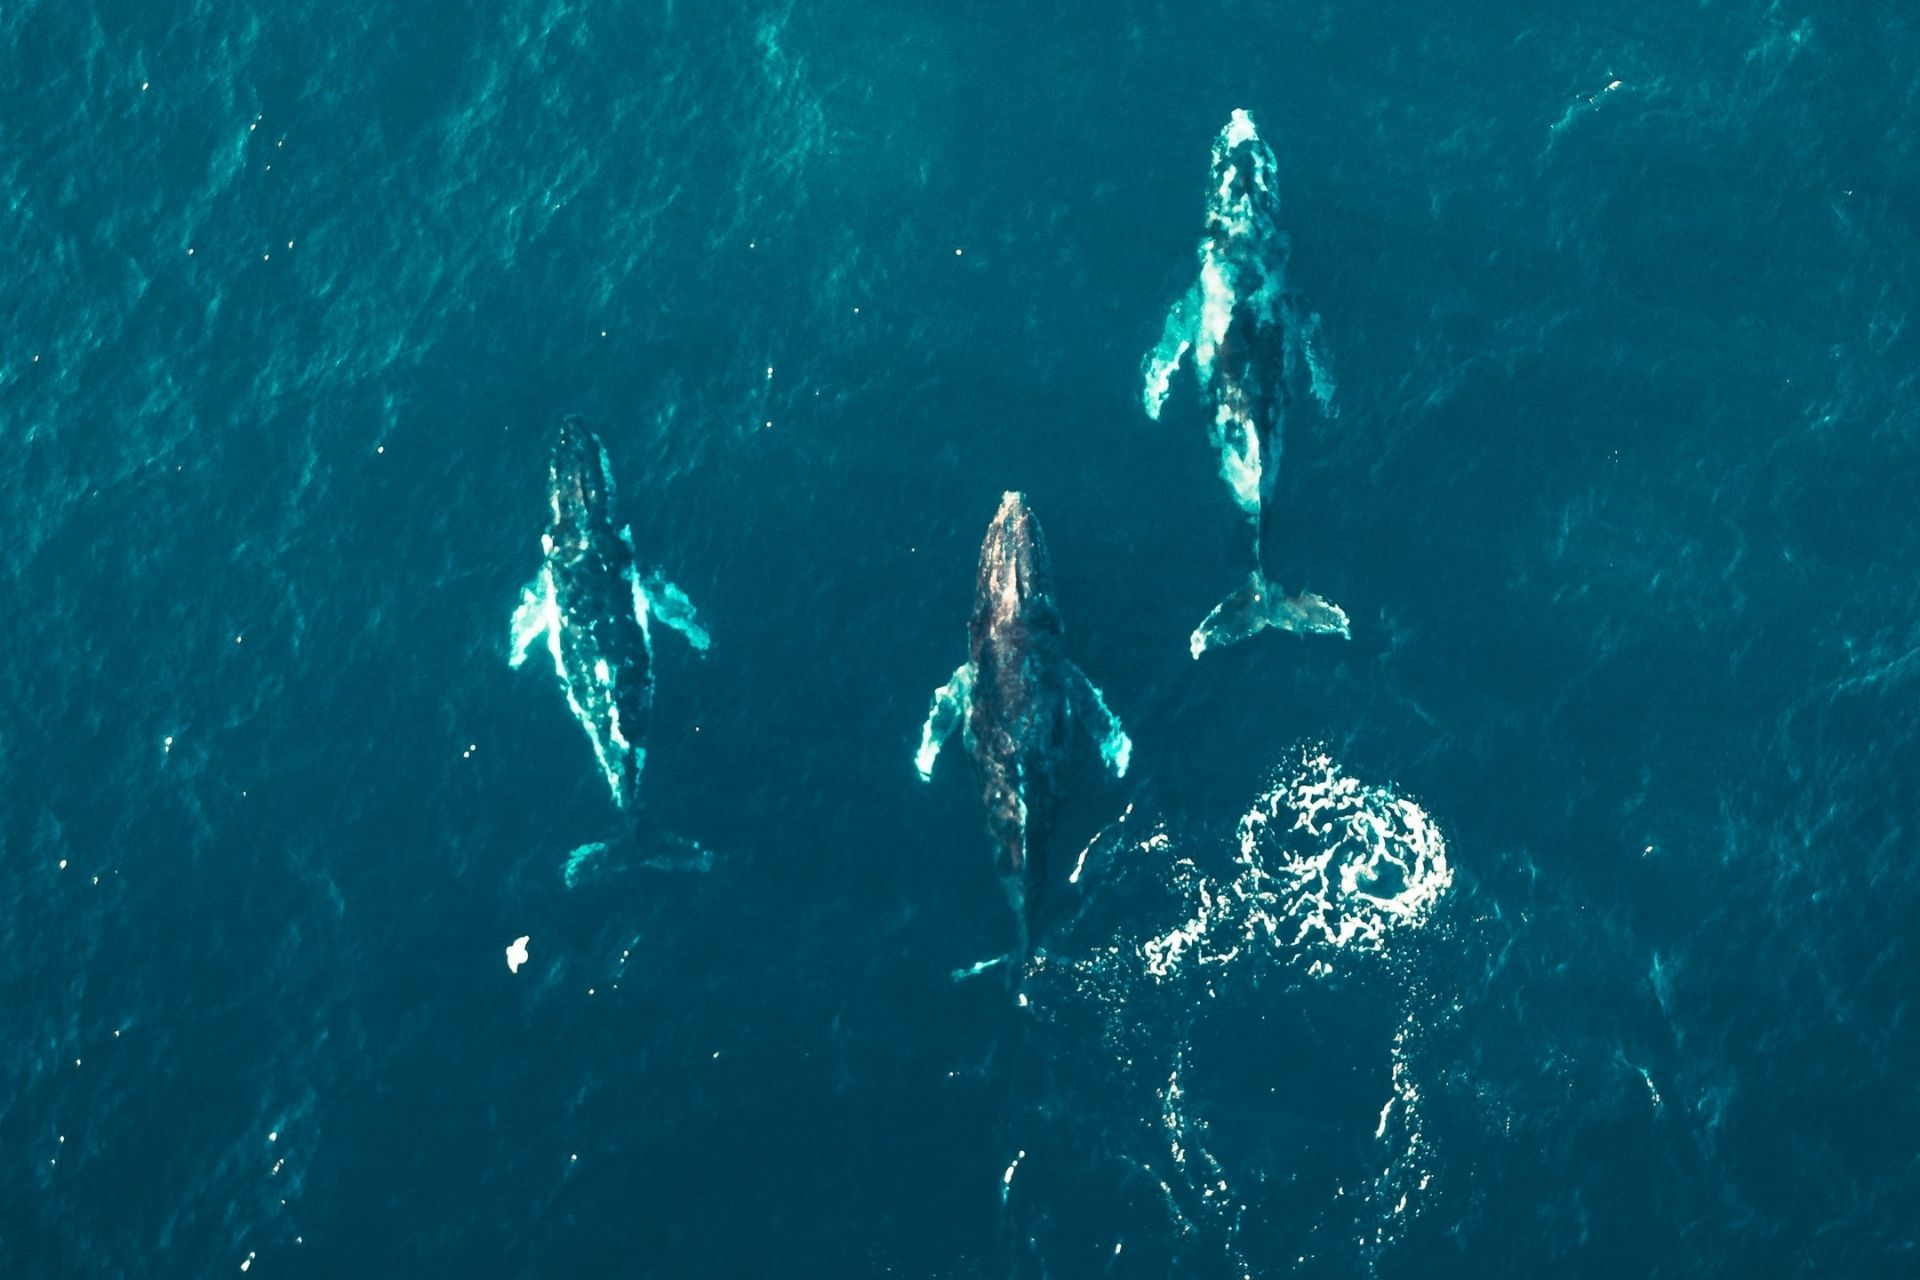 Whales in the Maldives